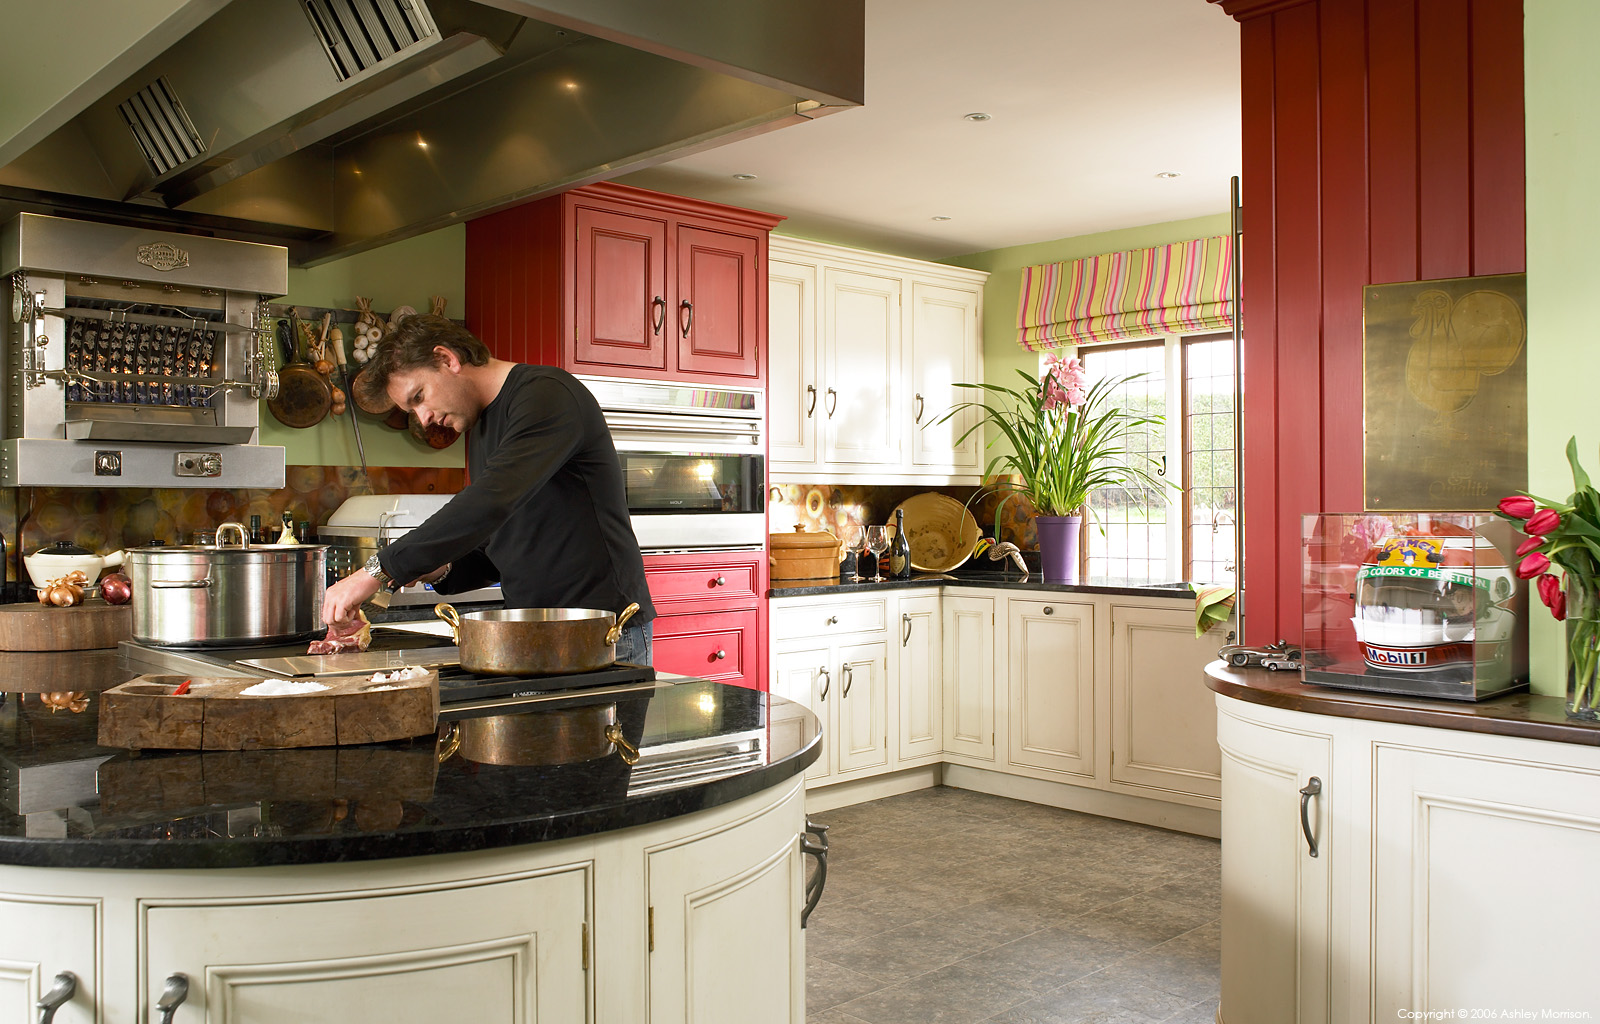 English TV celebrity chef James Martin in the kitchen of his detached 19th-century house in Hampshire.